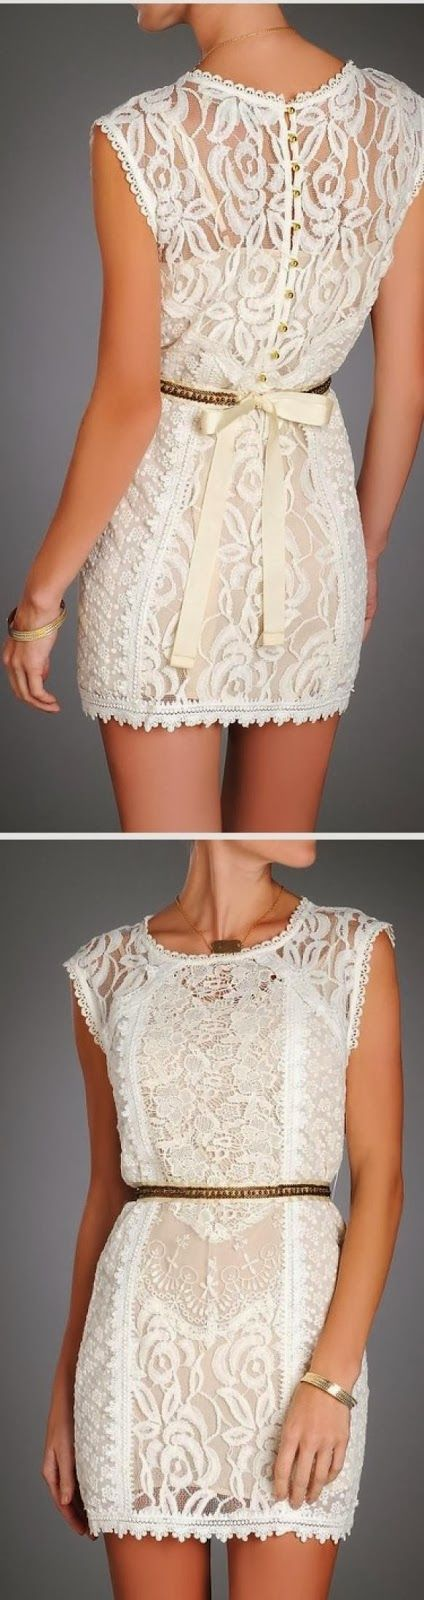 White Sleeveless Lace dress Click for more